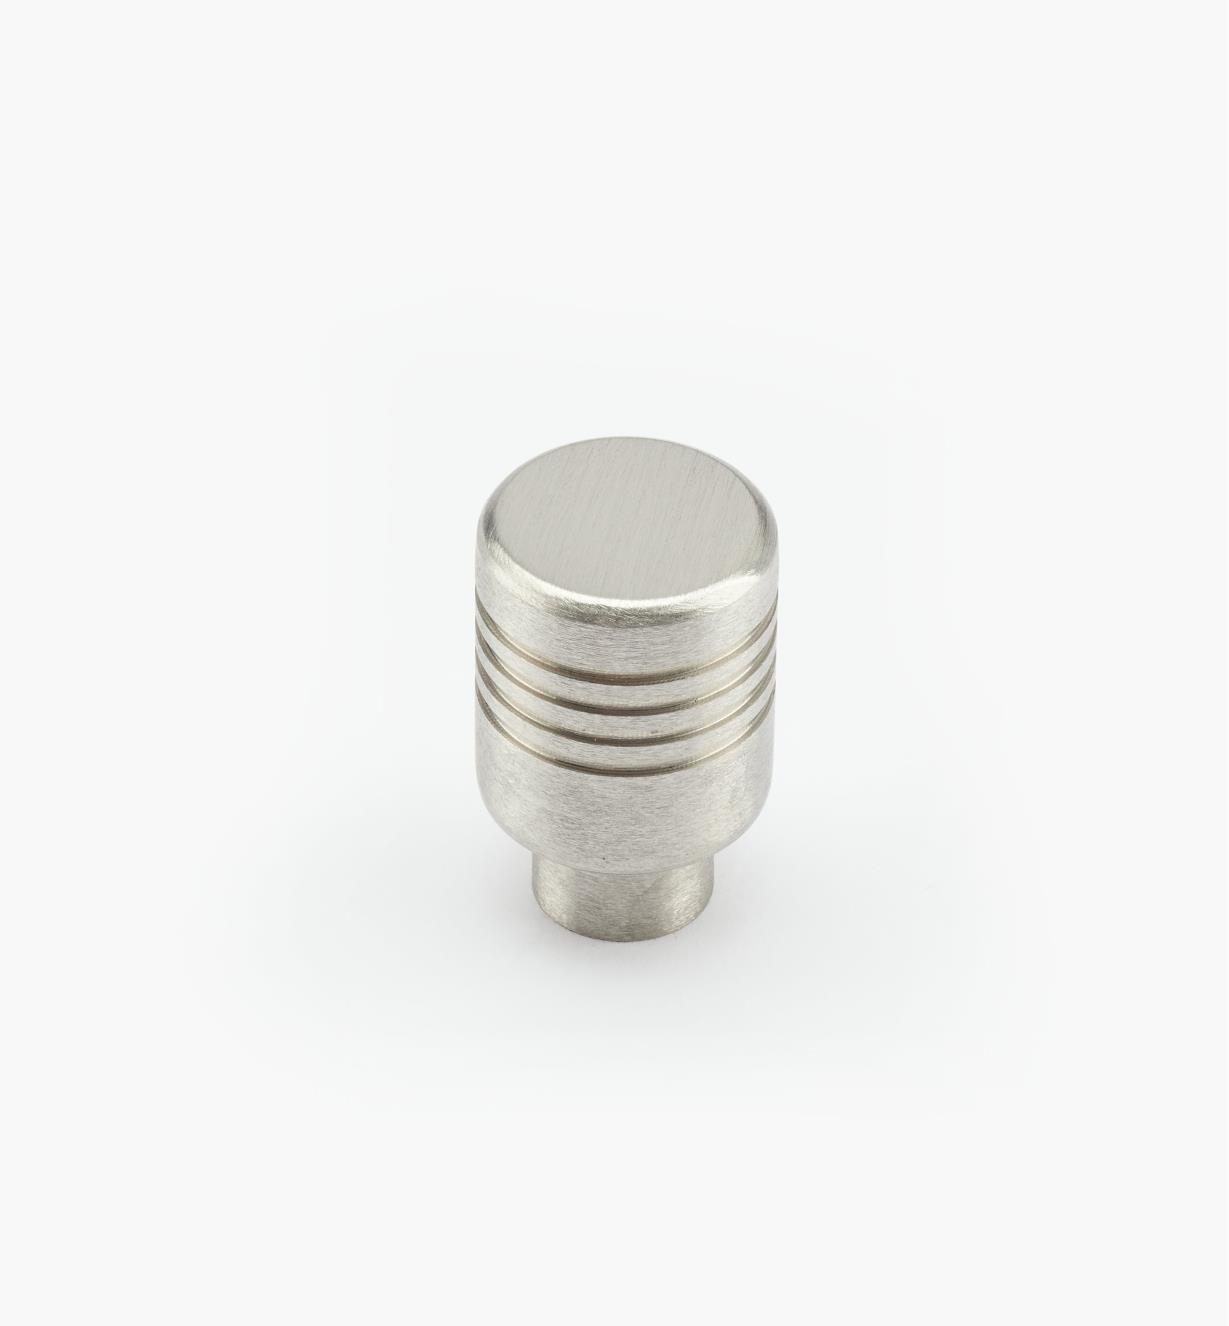 01W6714 - 14mm x 21mm Ribbed Knob